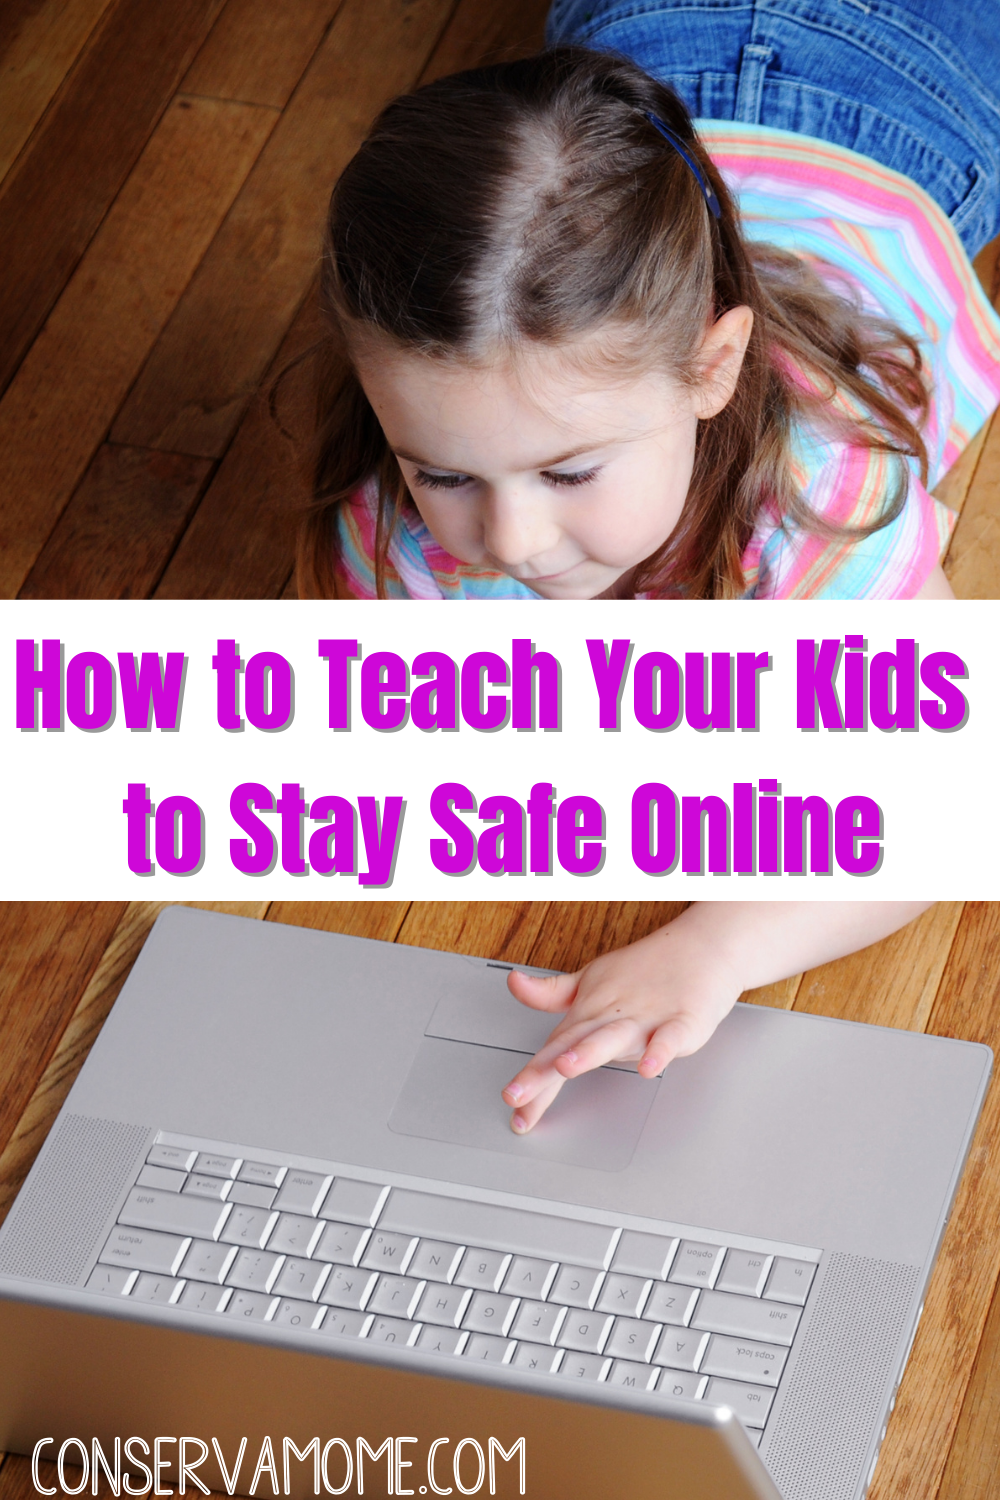 How to Teach Your Kids to Stay Safe Online